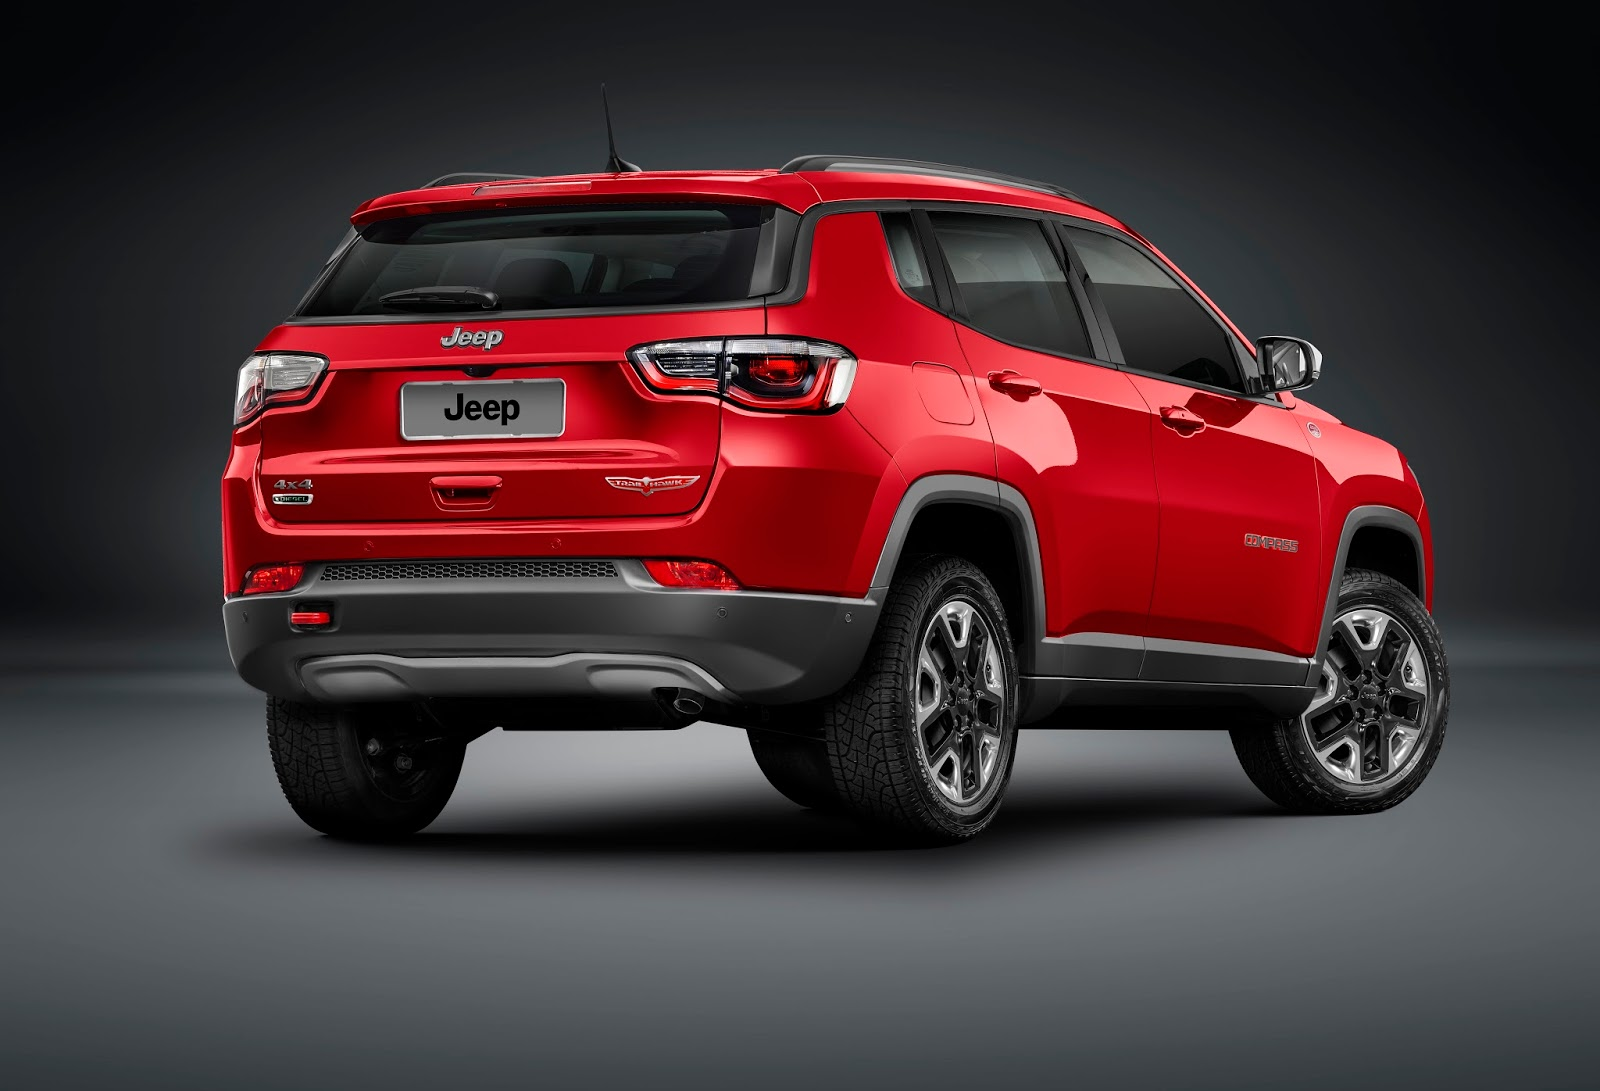 Estudante De Iju Rs Constri Veculo Eltrico Com Autonomia 40 Oil Filter Chevrolet Spin 1300 Cc Diesel The Mechanics Of Jeep Compass Stands Out For Today And Variety There Will Be Versions With New Engine 20 Tigershark Flexible Working In Harmony